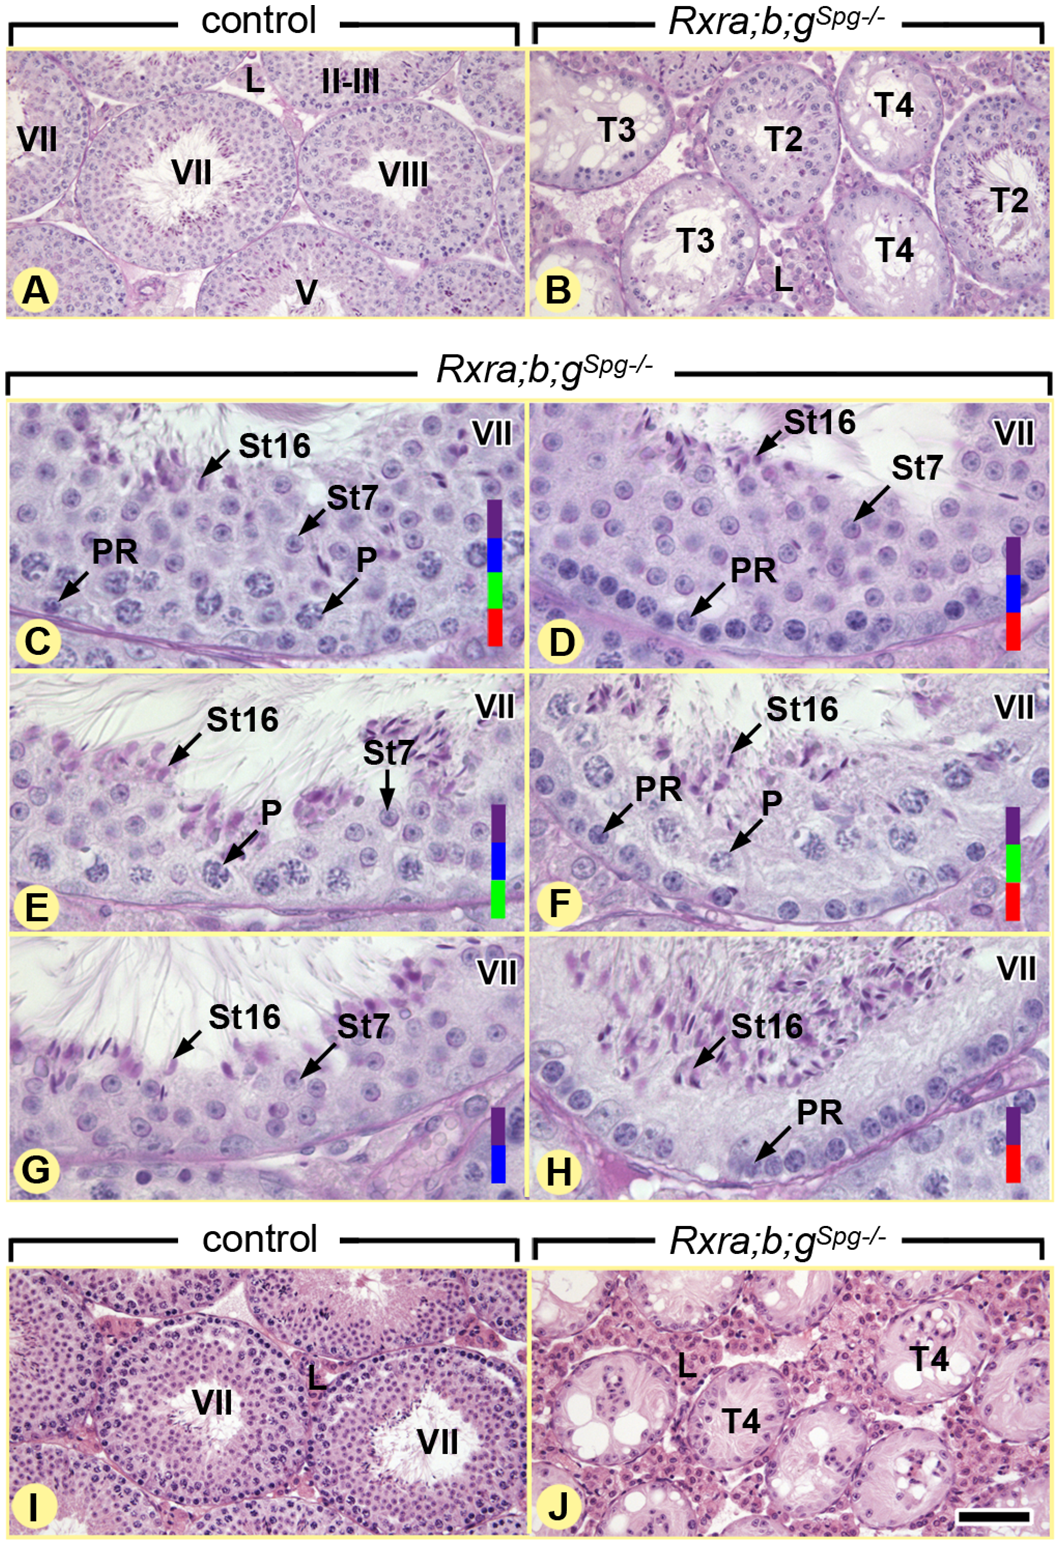 Ablation of RXR in spermatogonia induces age-related testis degeneration.